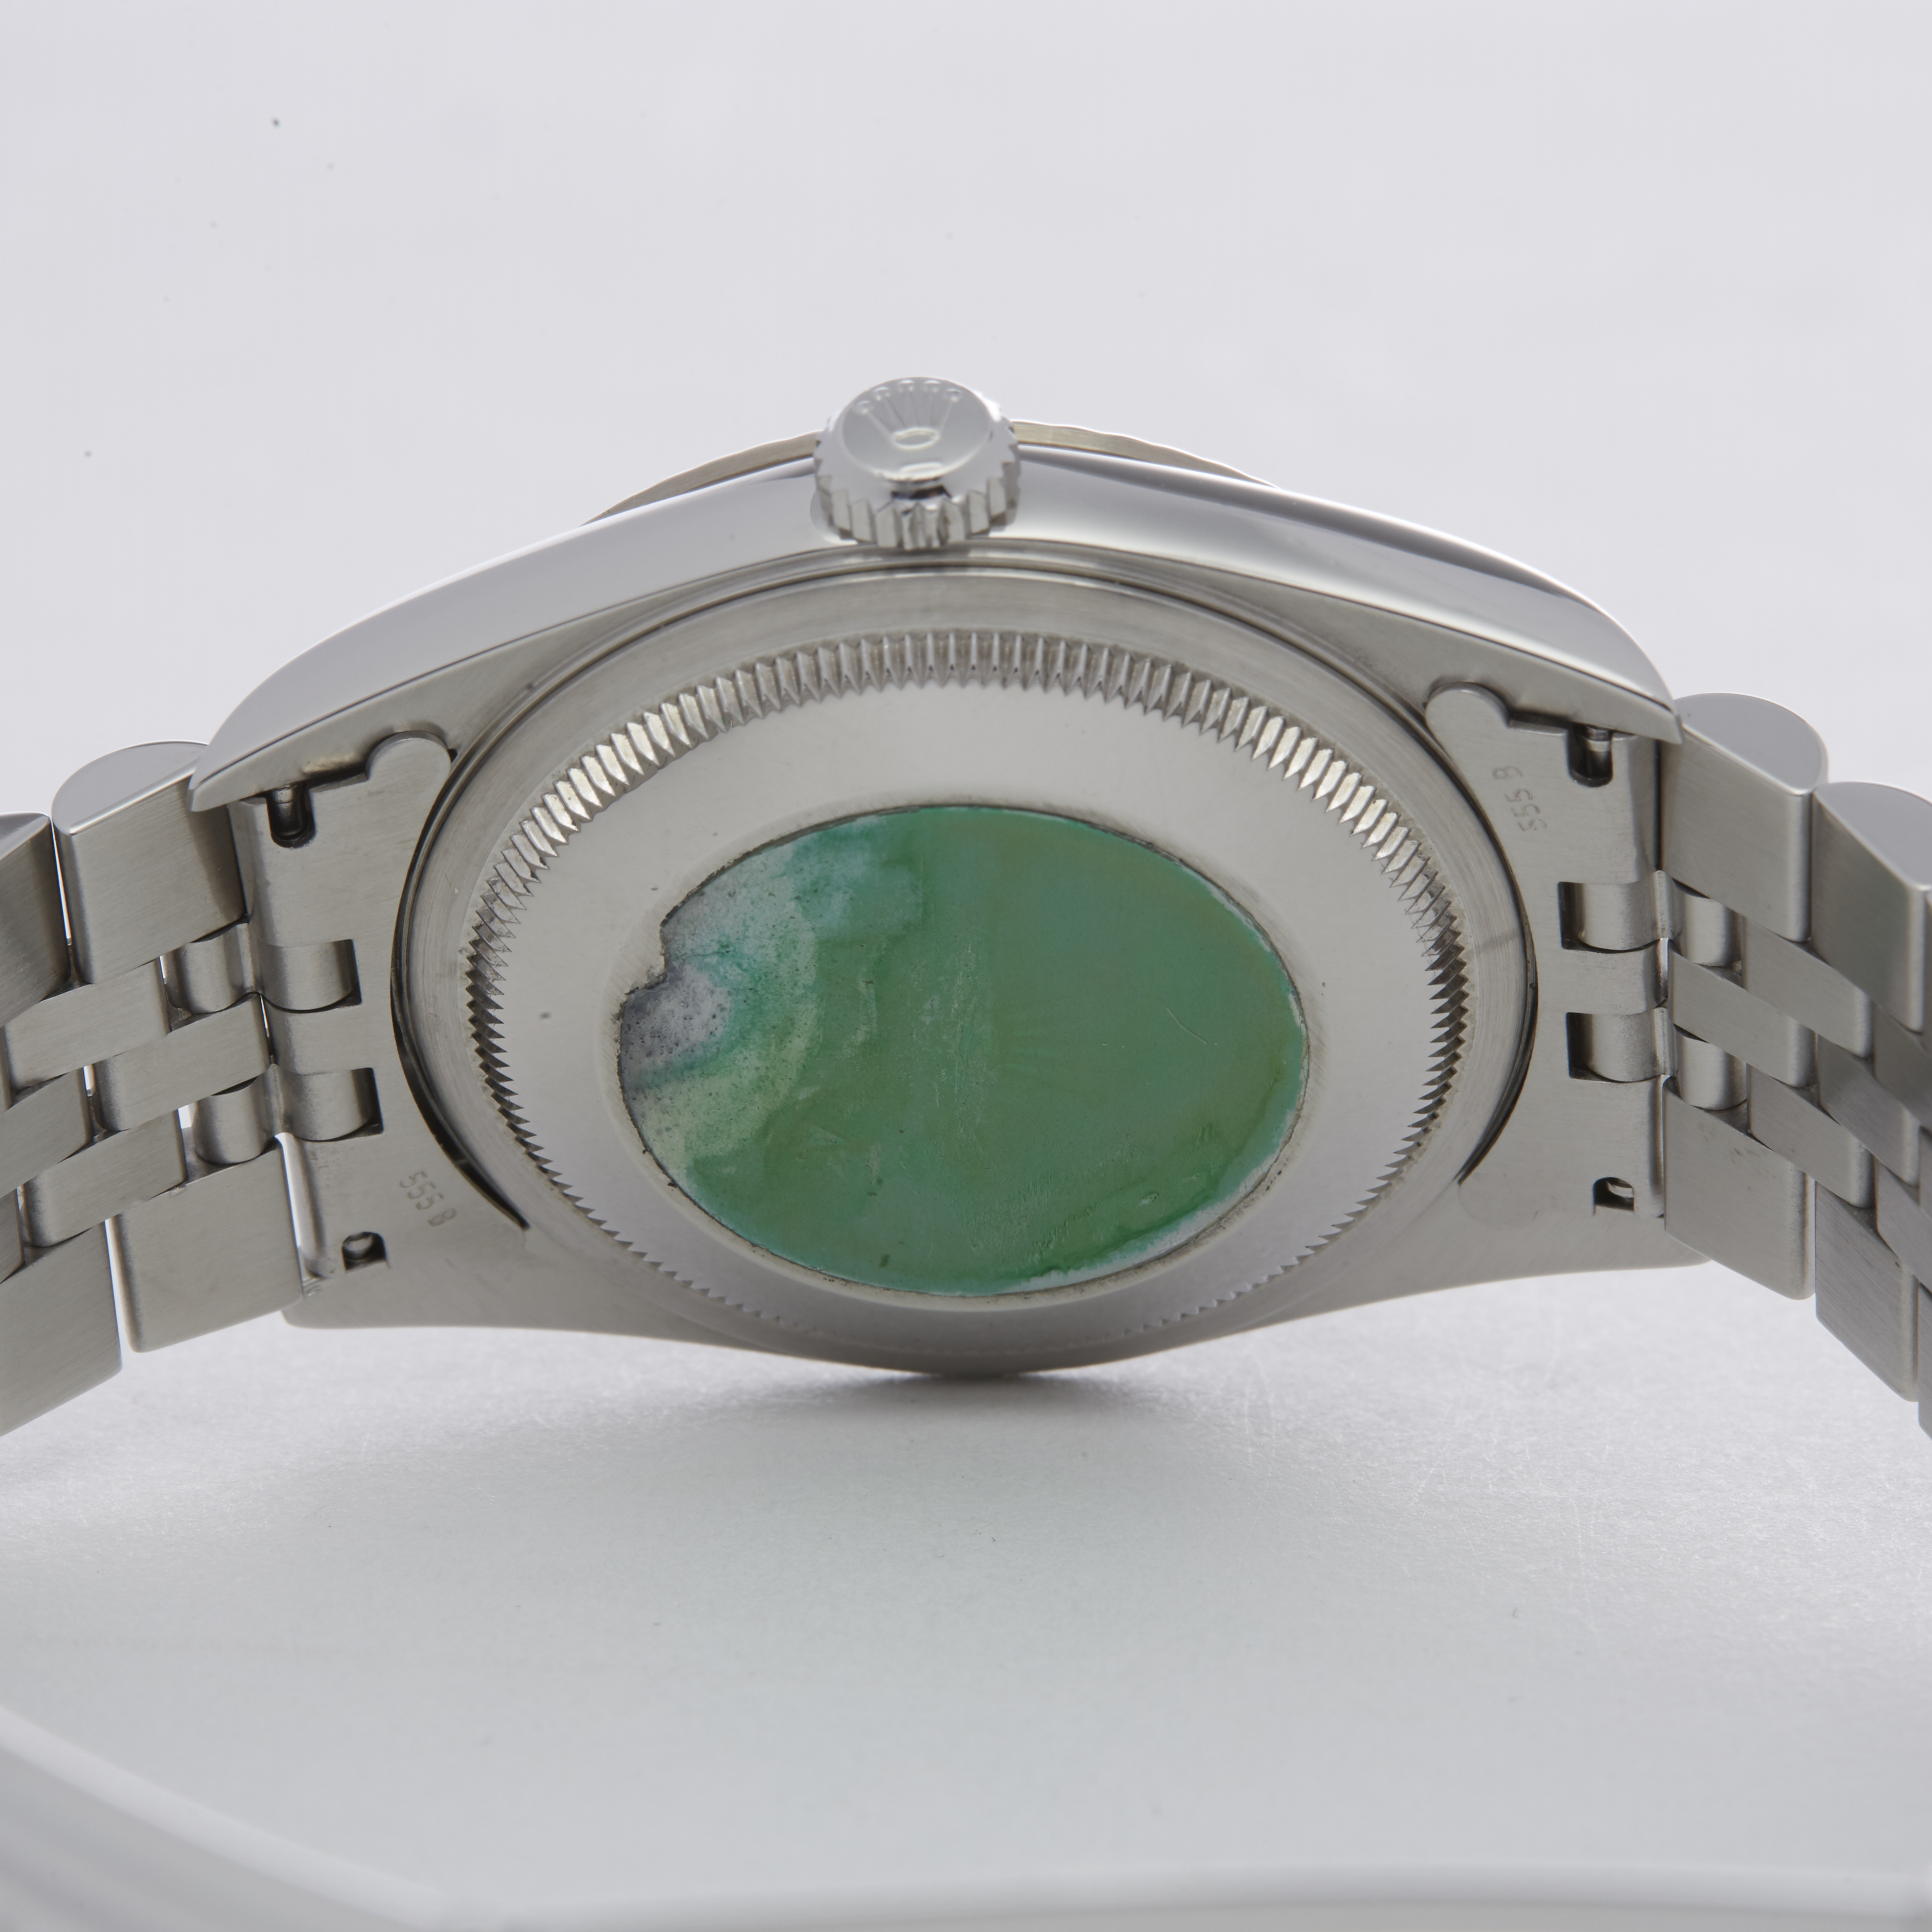 Rolex Datejust 36 16234 Unisex Stainless Steel Watch - Image 2 of 6